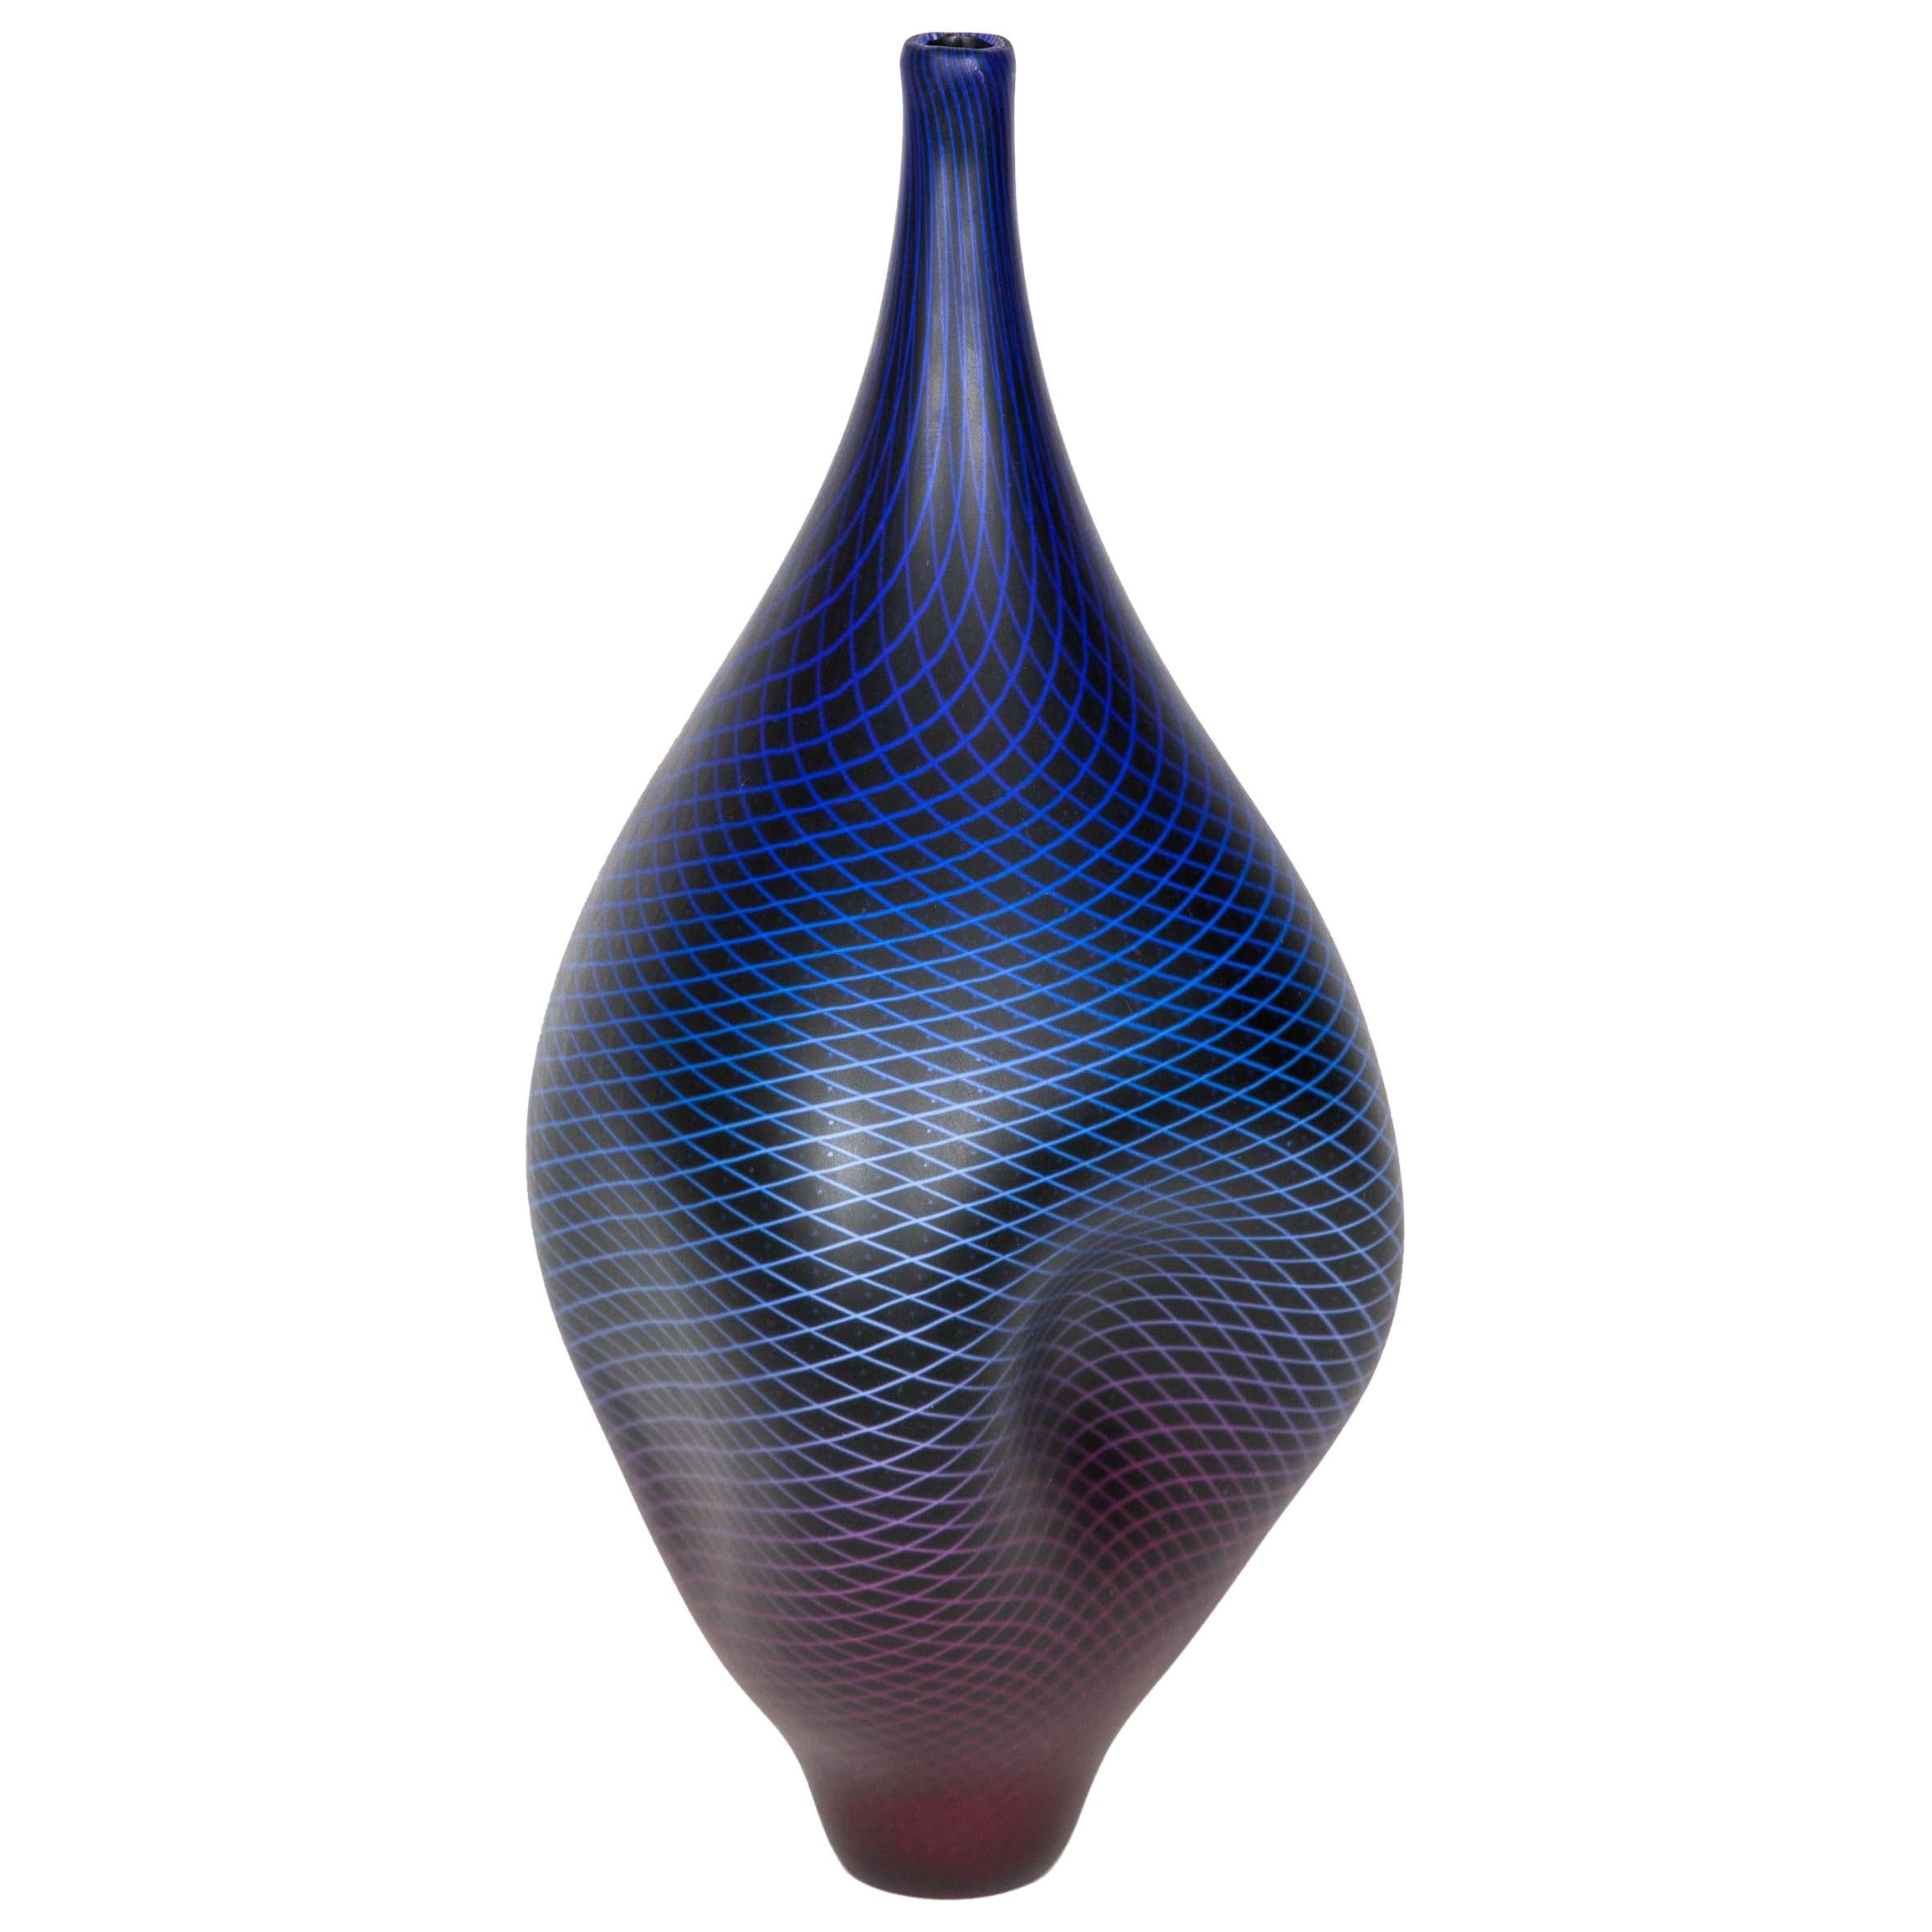 Warp & Fade 017, a Unique Blue, Purple & Red Glass Sculpture by Liam Reeves